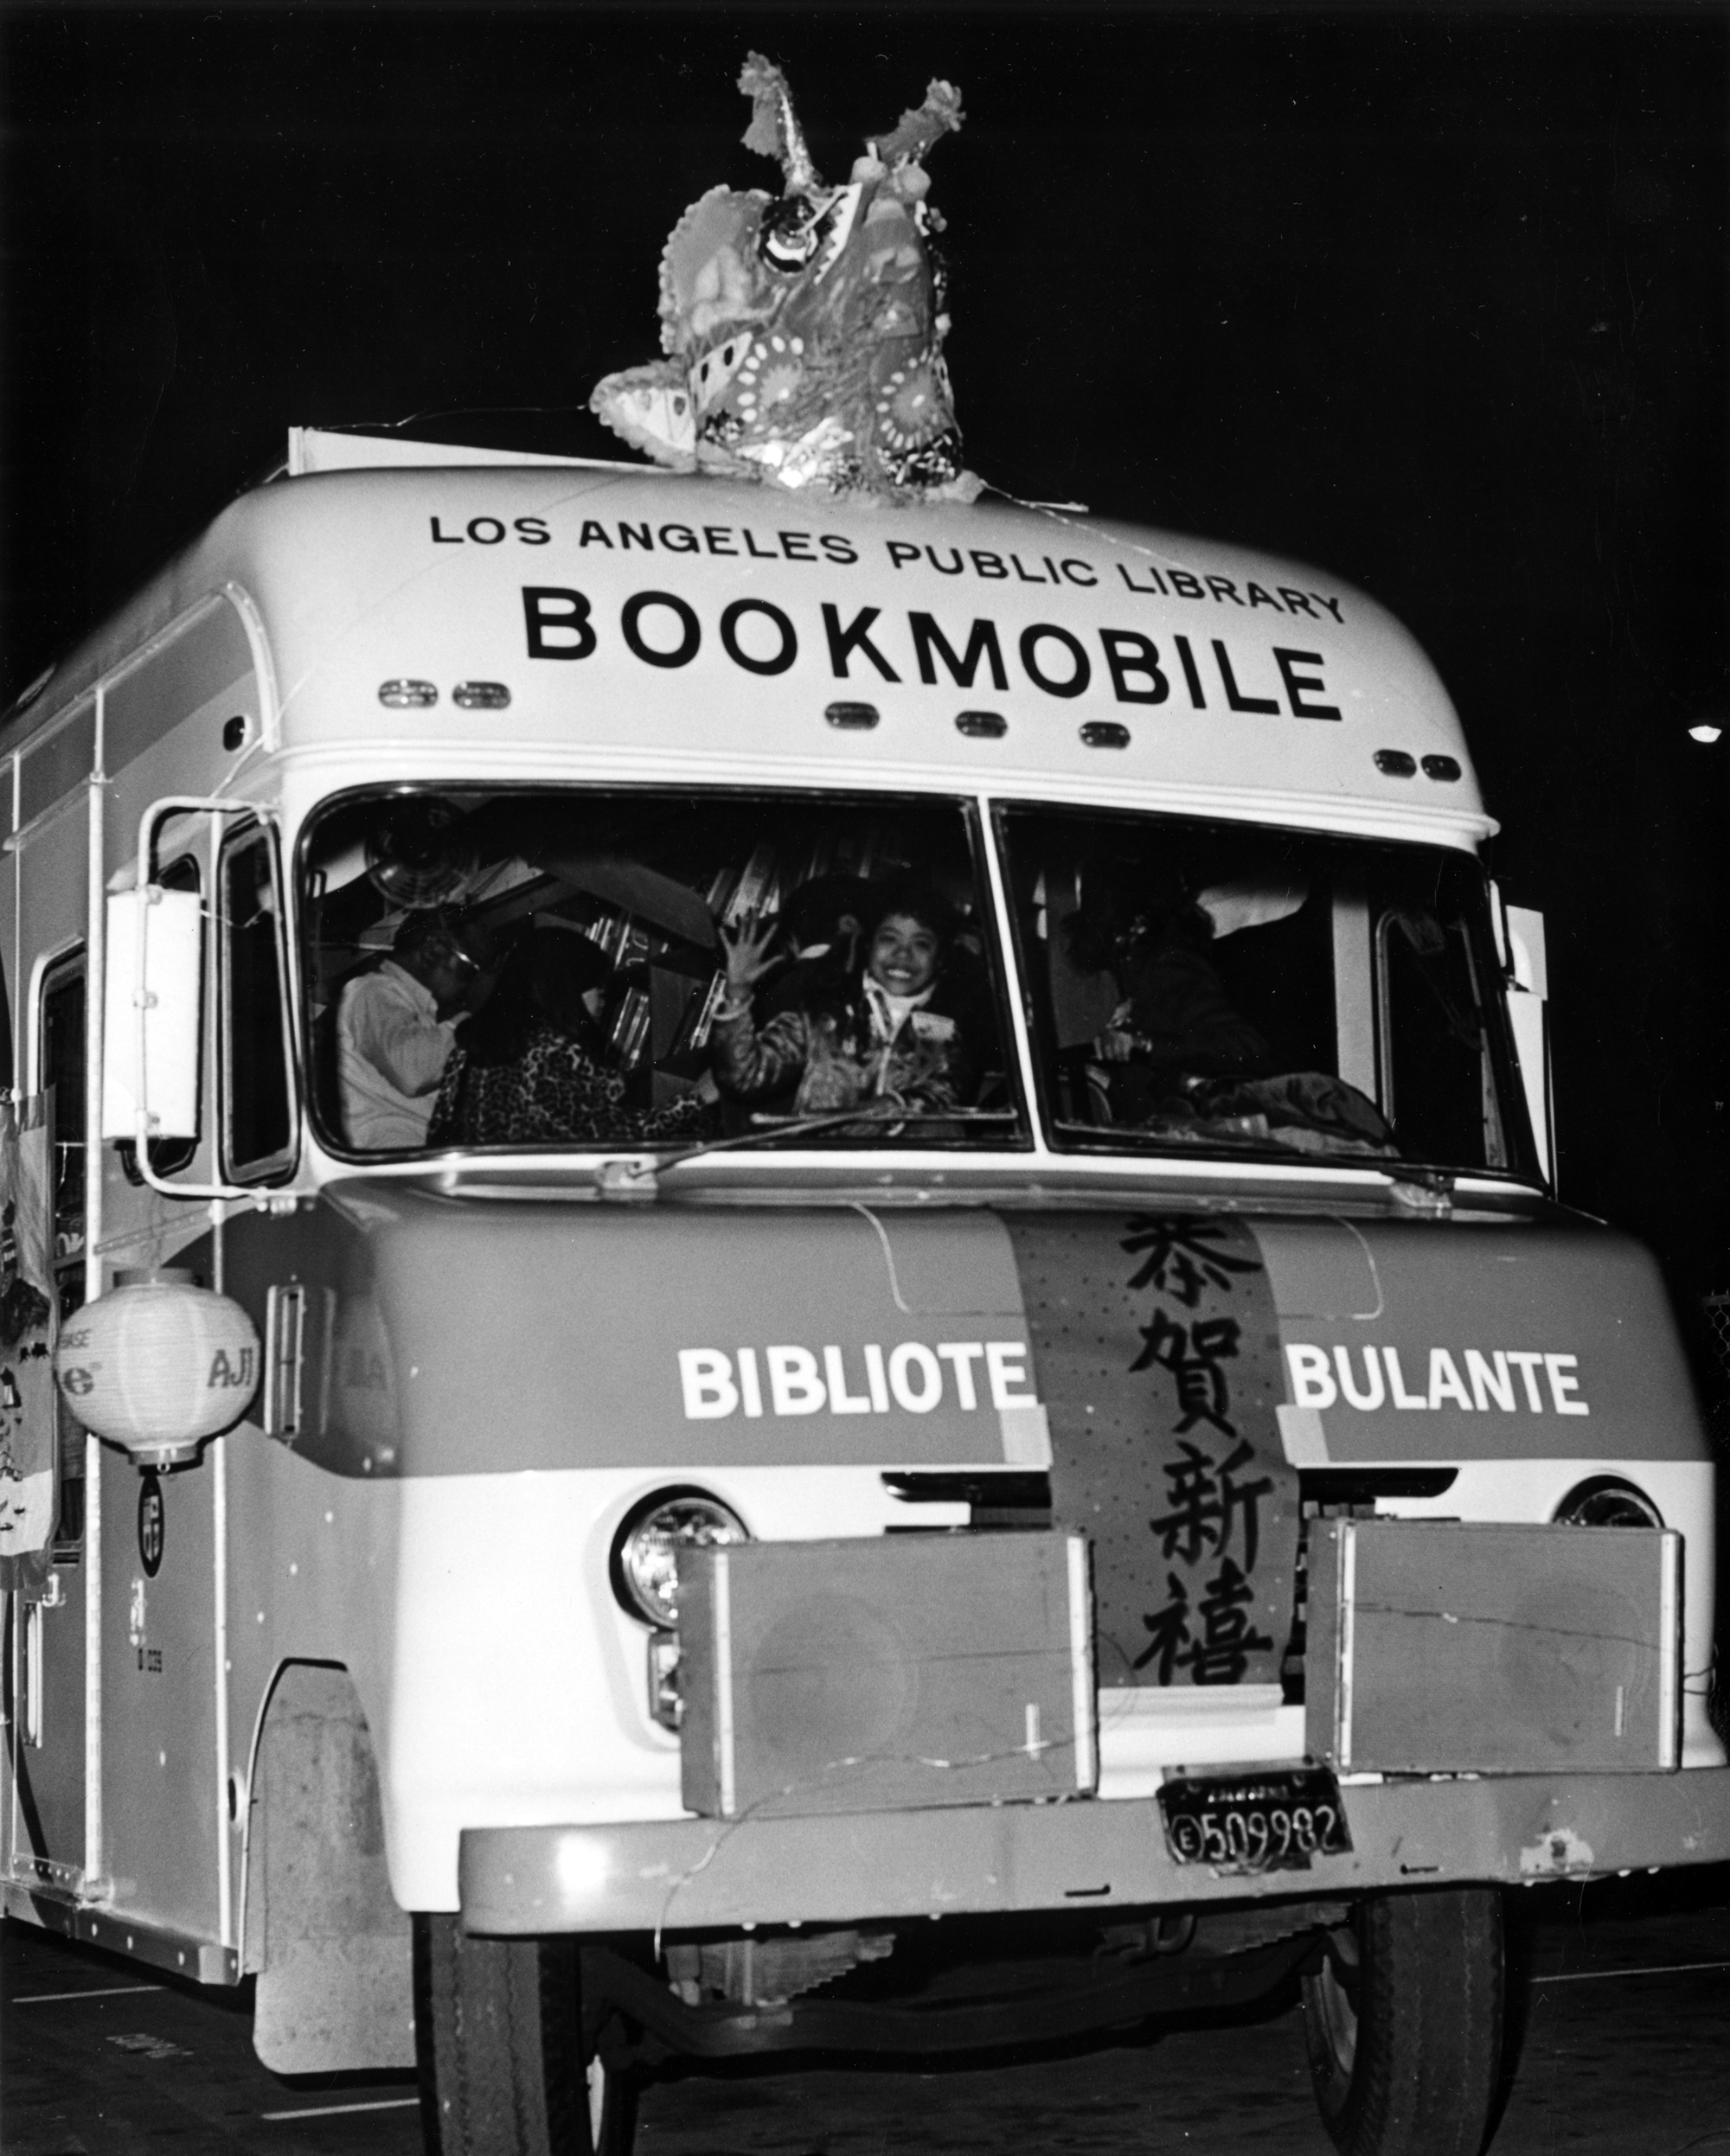 Los Angeles Public Library bookmobile decorated for Chinese New Year parade (1974)